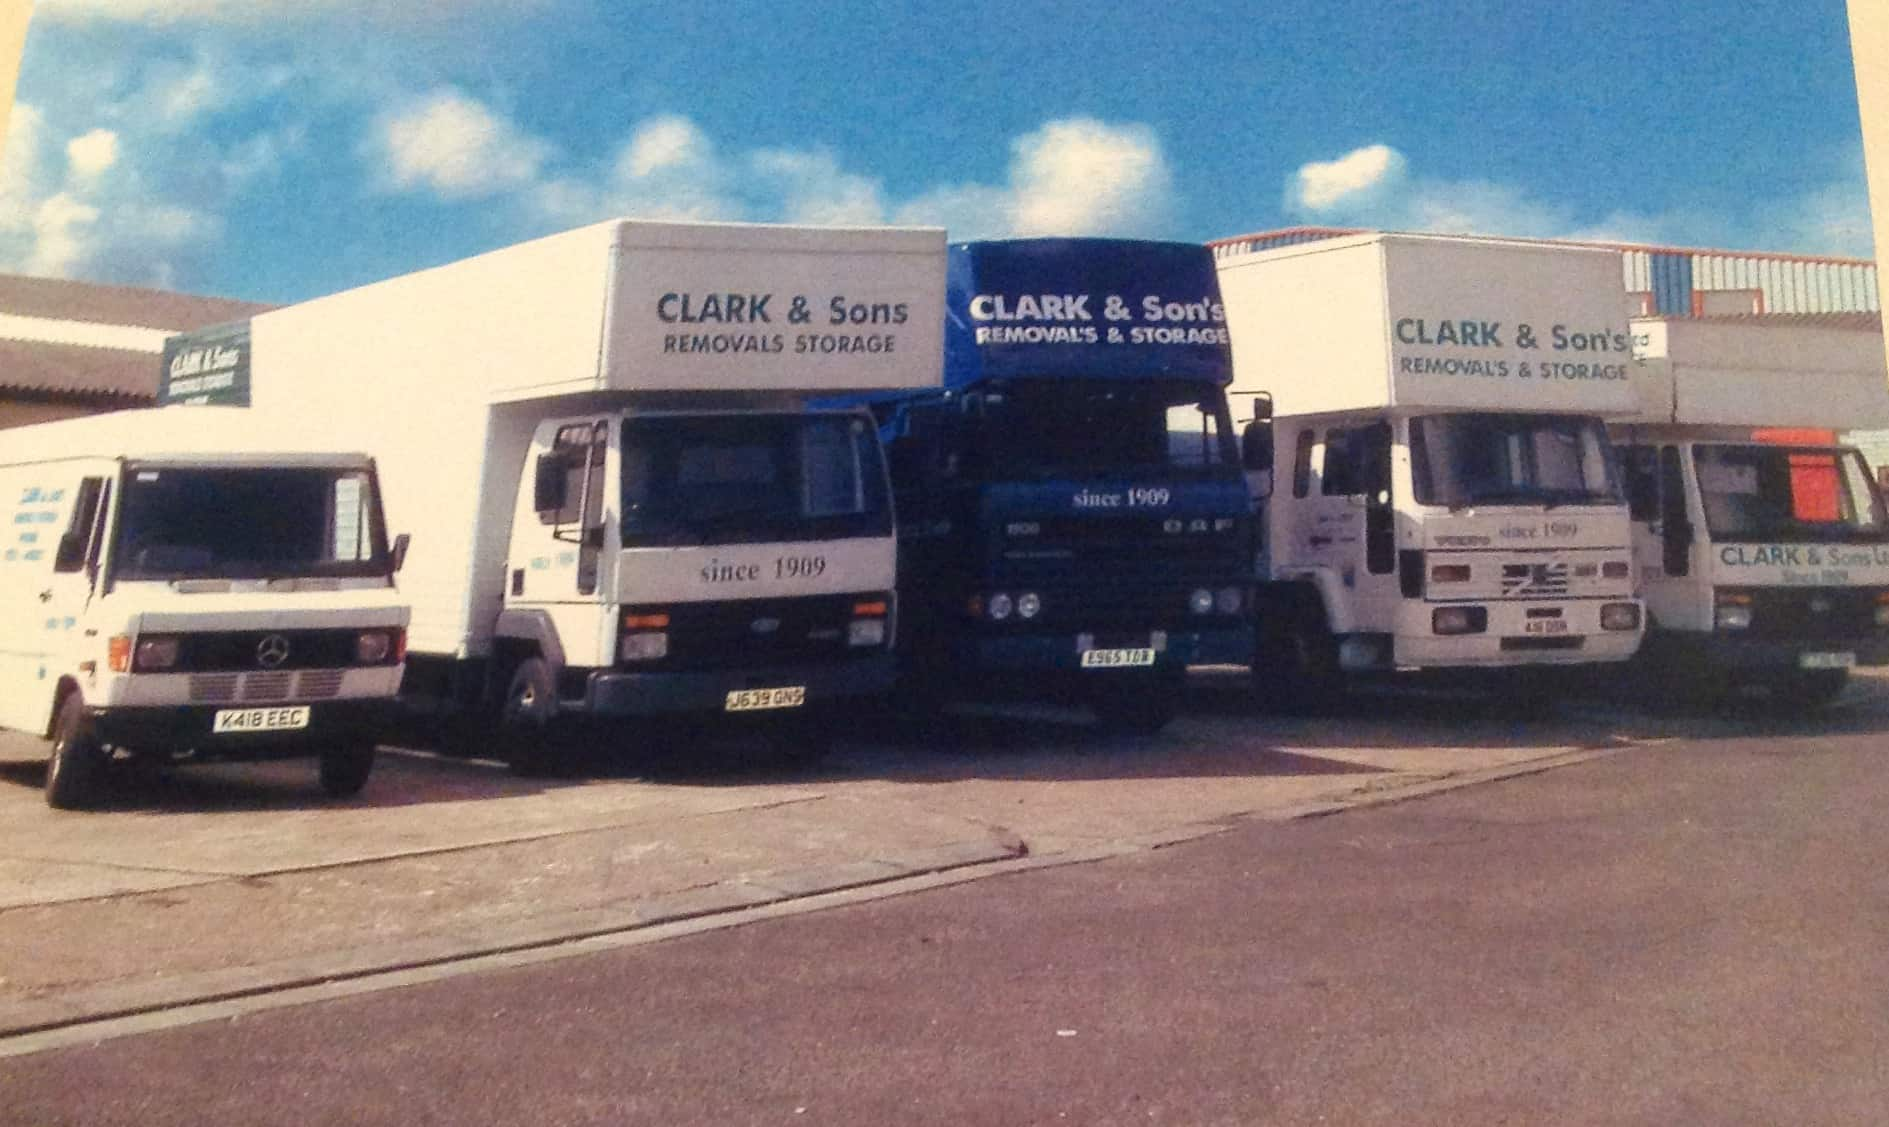 Removals Blackpool removals in Blackpool Barry Clark Clarks removals Clark and sons removals